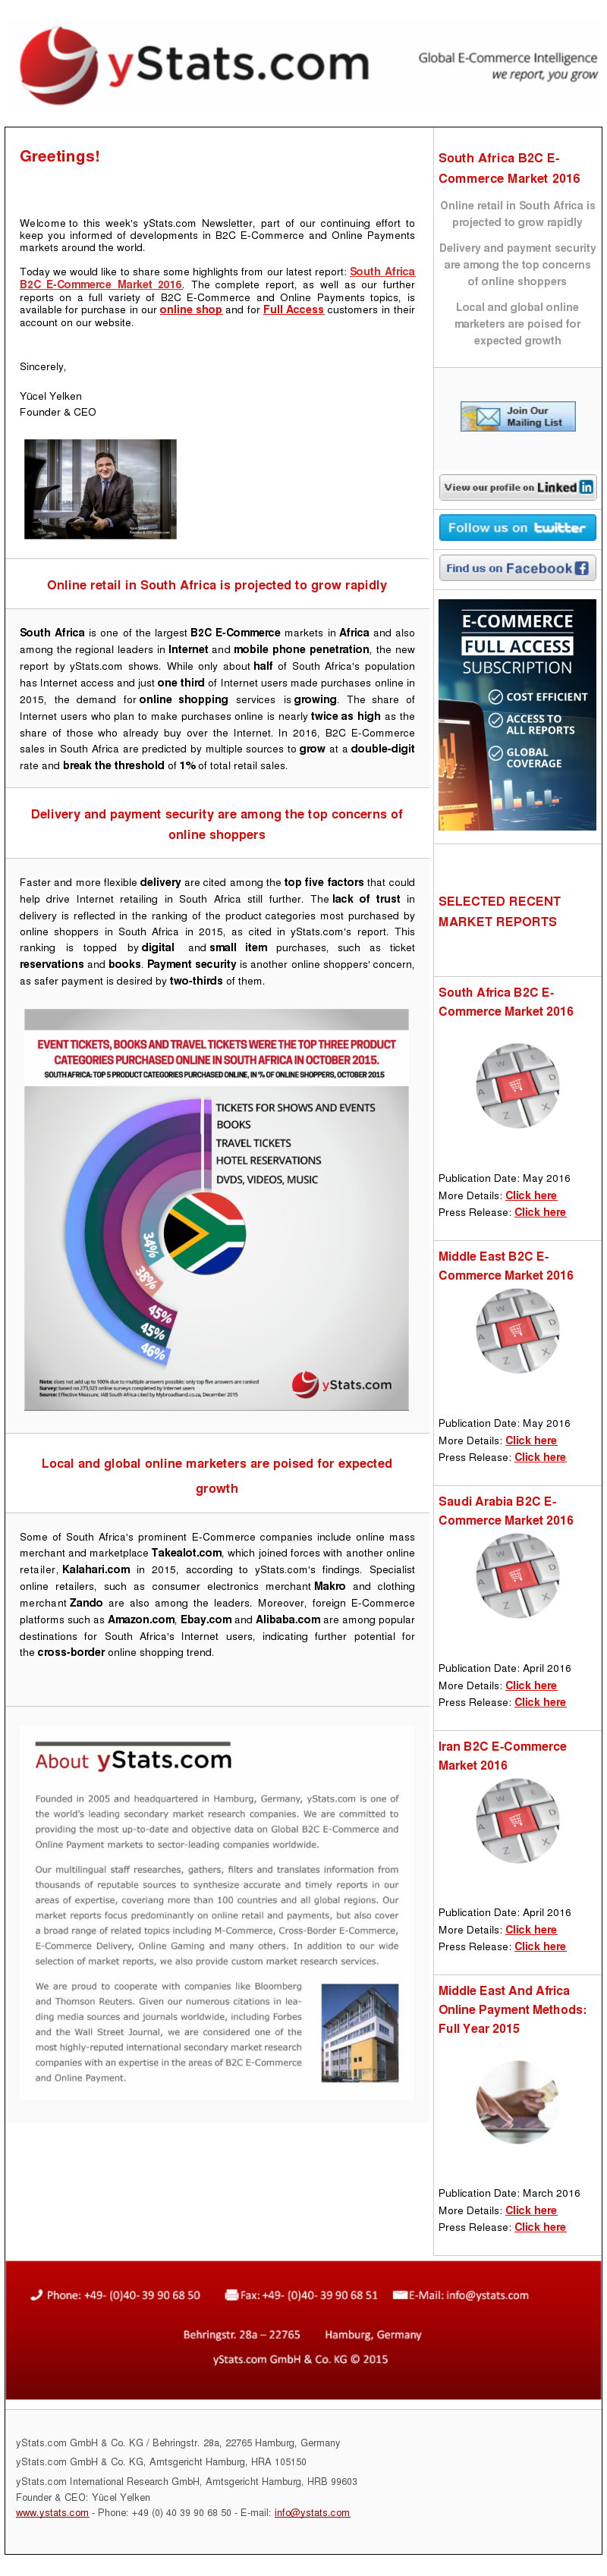 yStats.com Newsletter B2C E-Commerce South Africa , South Africa Africa B2C E-Commerce Market 2016 , market size , online shoppers , retail sales , ecommerce sales , internet penetration , emerging market , south Africa , mobile phone penetration ,  local ecommerce companies , global online retail companies , online shopping , online shopping delivery methods , online payment security , takealot.com , Kalahari.com , makro , zando , cross-border online shopping trend , internet retail sales , e-commerce competitors , international players , newsletter , 2016 South Africa is one of the largest B2C E-Commerce markets in Africa and also among the regional leaders in Internet and mobile phone penetration, the new report by yStats.com shows. While only about half of South Africa's population has Internet access and just one third of Internet users made purchases online in 2015, the demand for online shopping services is growing. The share of Internet users who plan to make purchases online is nearly twice as high as the share of those who already buy over the Internet. In 2016, B2C E-Commerce sales in South Africa are predicted by multiple sources to grow at a double-digit rate and break the threshold of 1% of total retail sales.  Faster and more flexible delivery are cited among the top five factors that could help drive Internet retailing in South Africa still further. The lack of trust in delivery is reflected in the ranking of the product categories most purchased by online shoppers in South Africa in 2015, as cited in yStats.com's report. This ranking is topped by digital and small item purchases, such as ticket reservations and books. Payment safety is another online shoppers' concern, as safer payment is desired by two-thirds of them.  Some of South Africa's prominent E-Commerce companies include online mass merchant and marketplace Takealot.com, which joined forces with another online retailer, Kalahari.com in 2015, according to yStats.com's findings. Specialist o